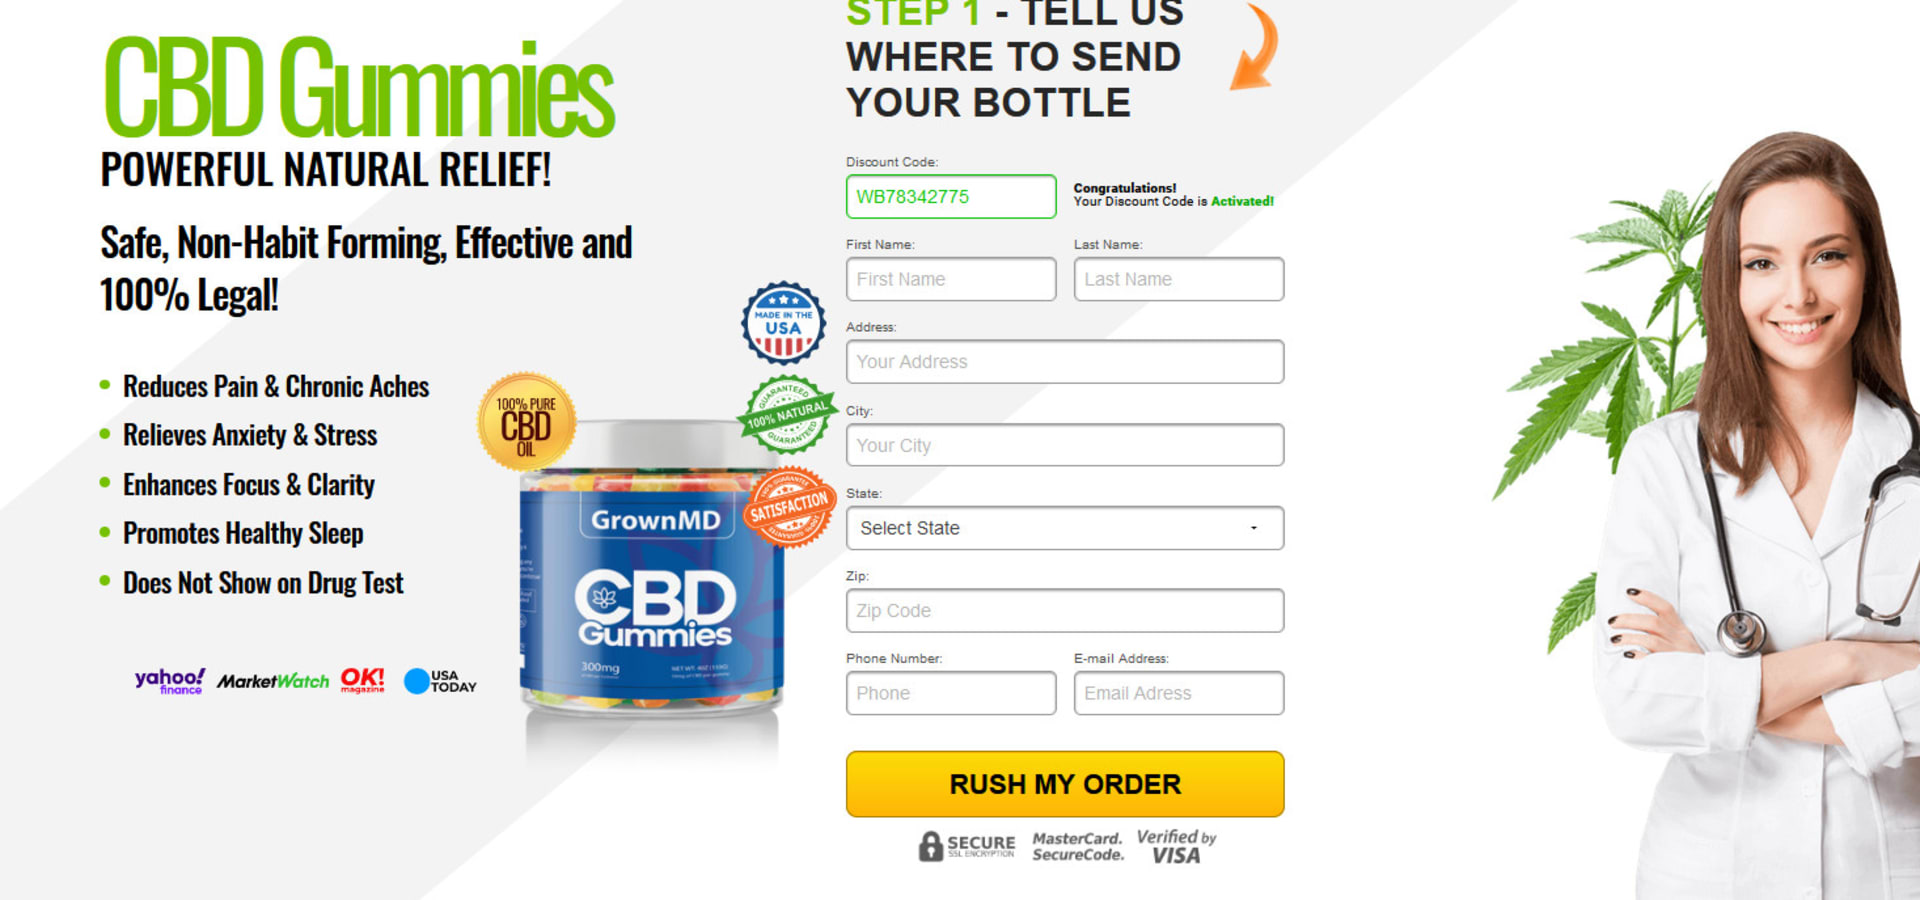 GrownMD CBD Gummies US: Home Appliances in New York | homify